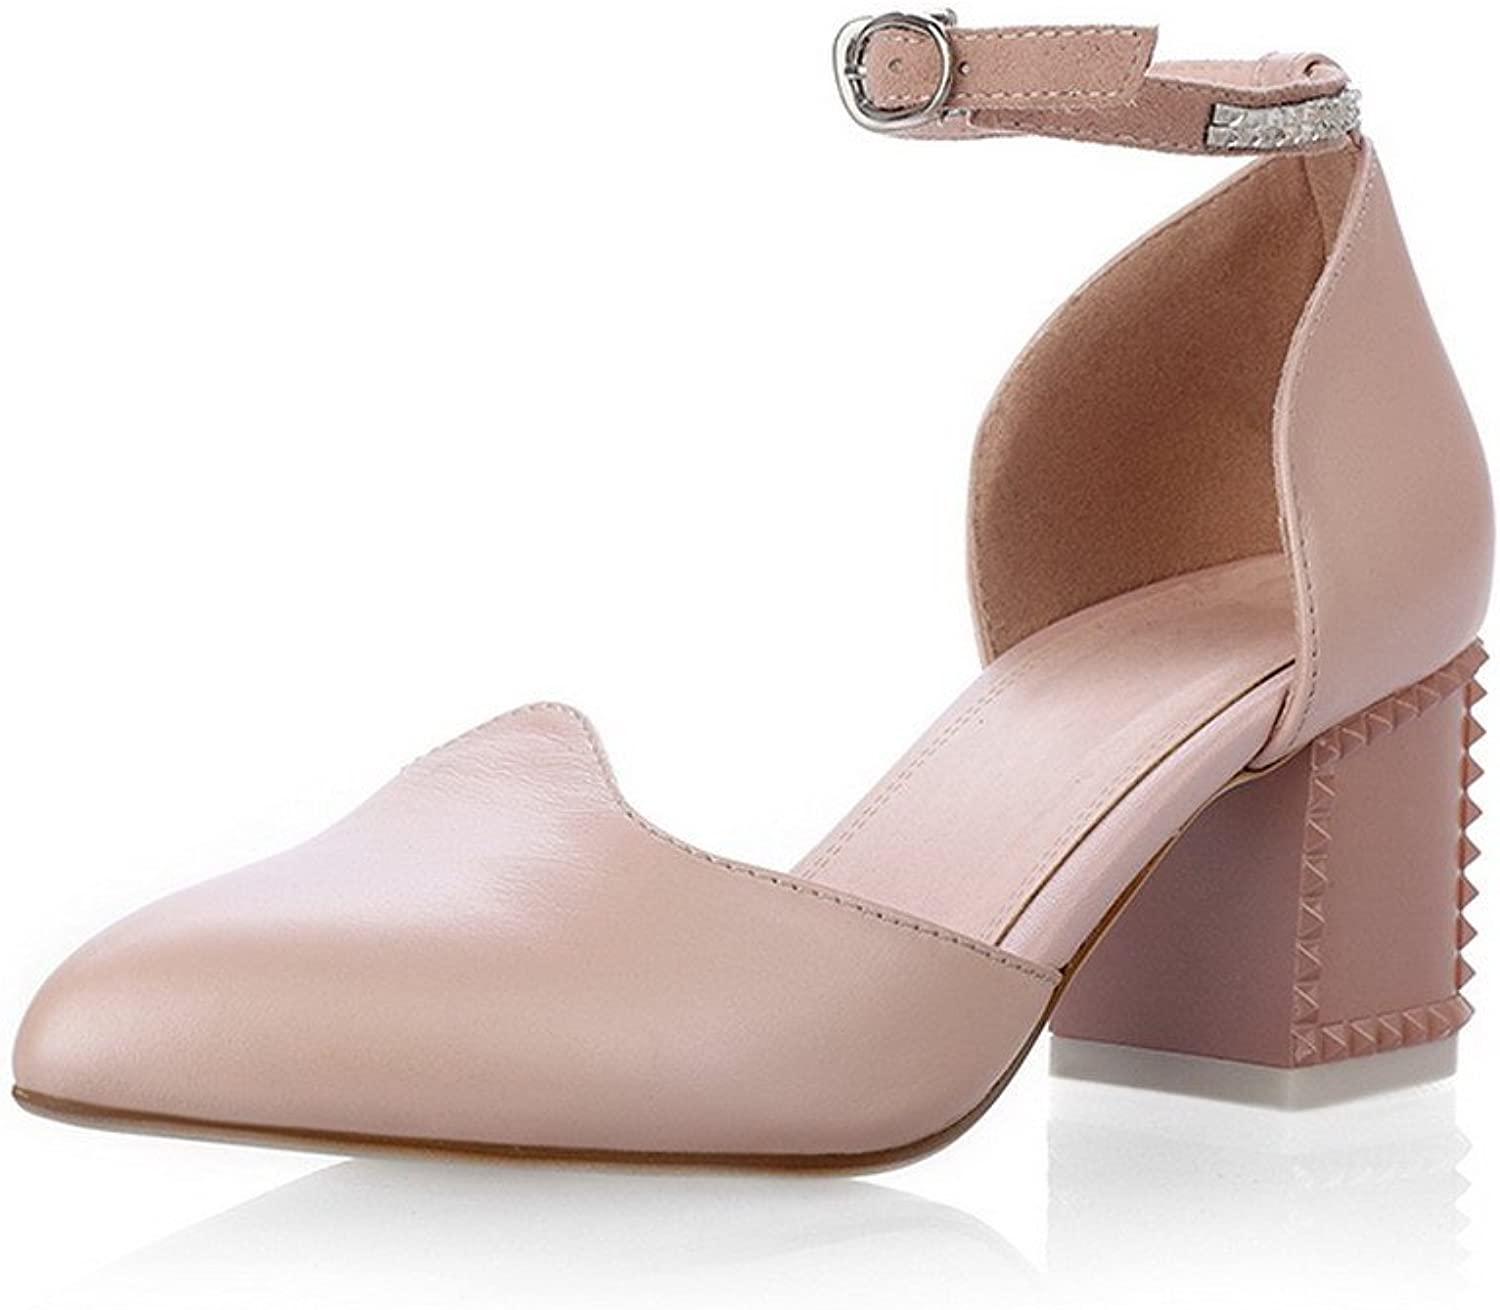 AmoonyFashion Womens Closed Pointed Toe Mid Heel Soft Material PU Solid Pumps, Pink, 10 B(M) US